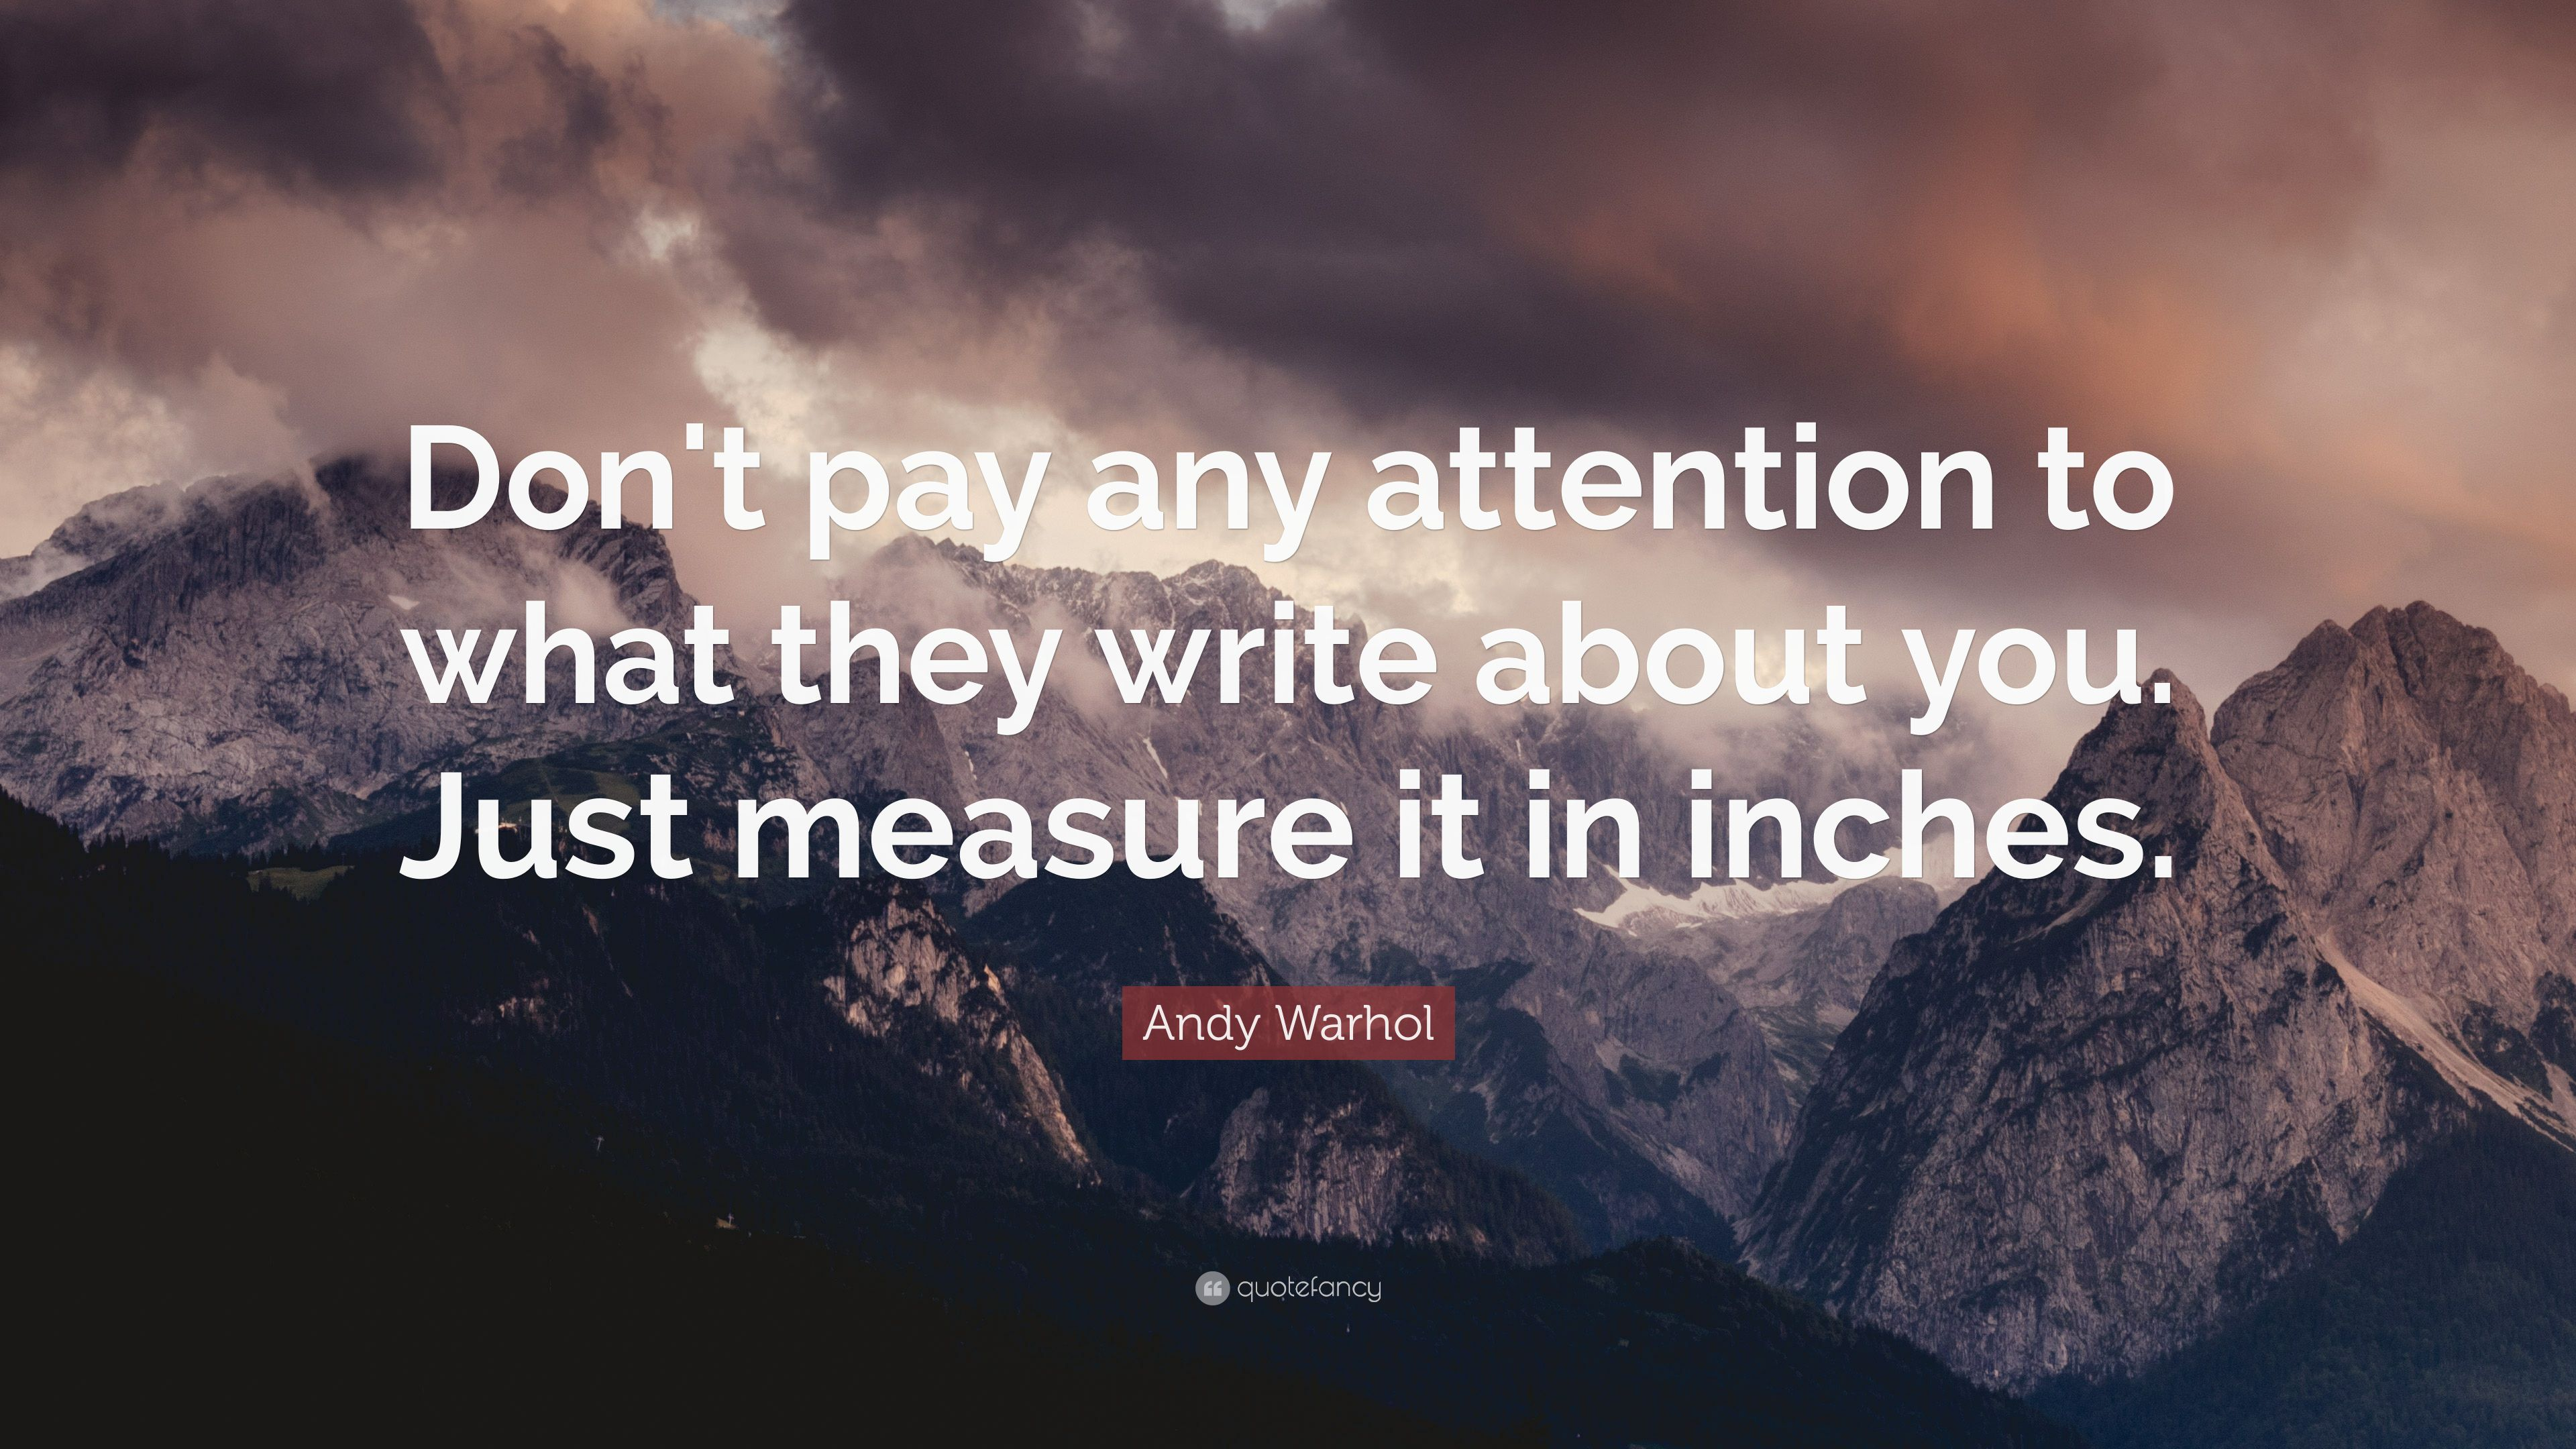 Dont pay attention to what they write about you just measure it in inches